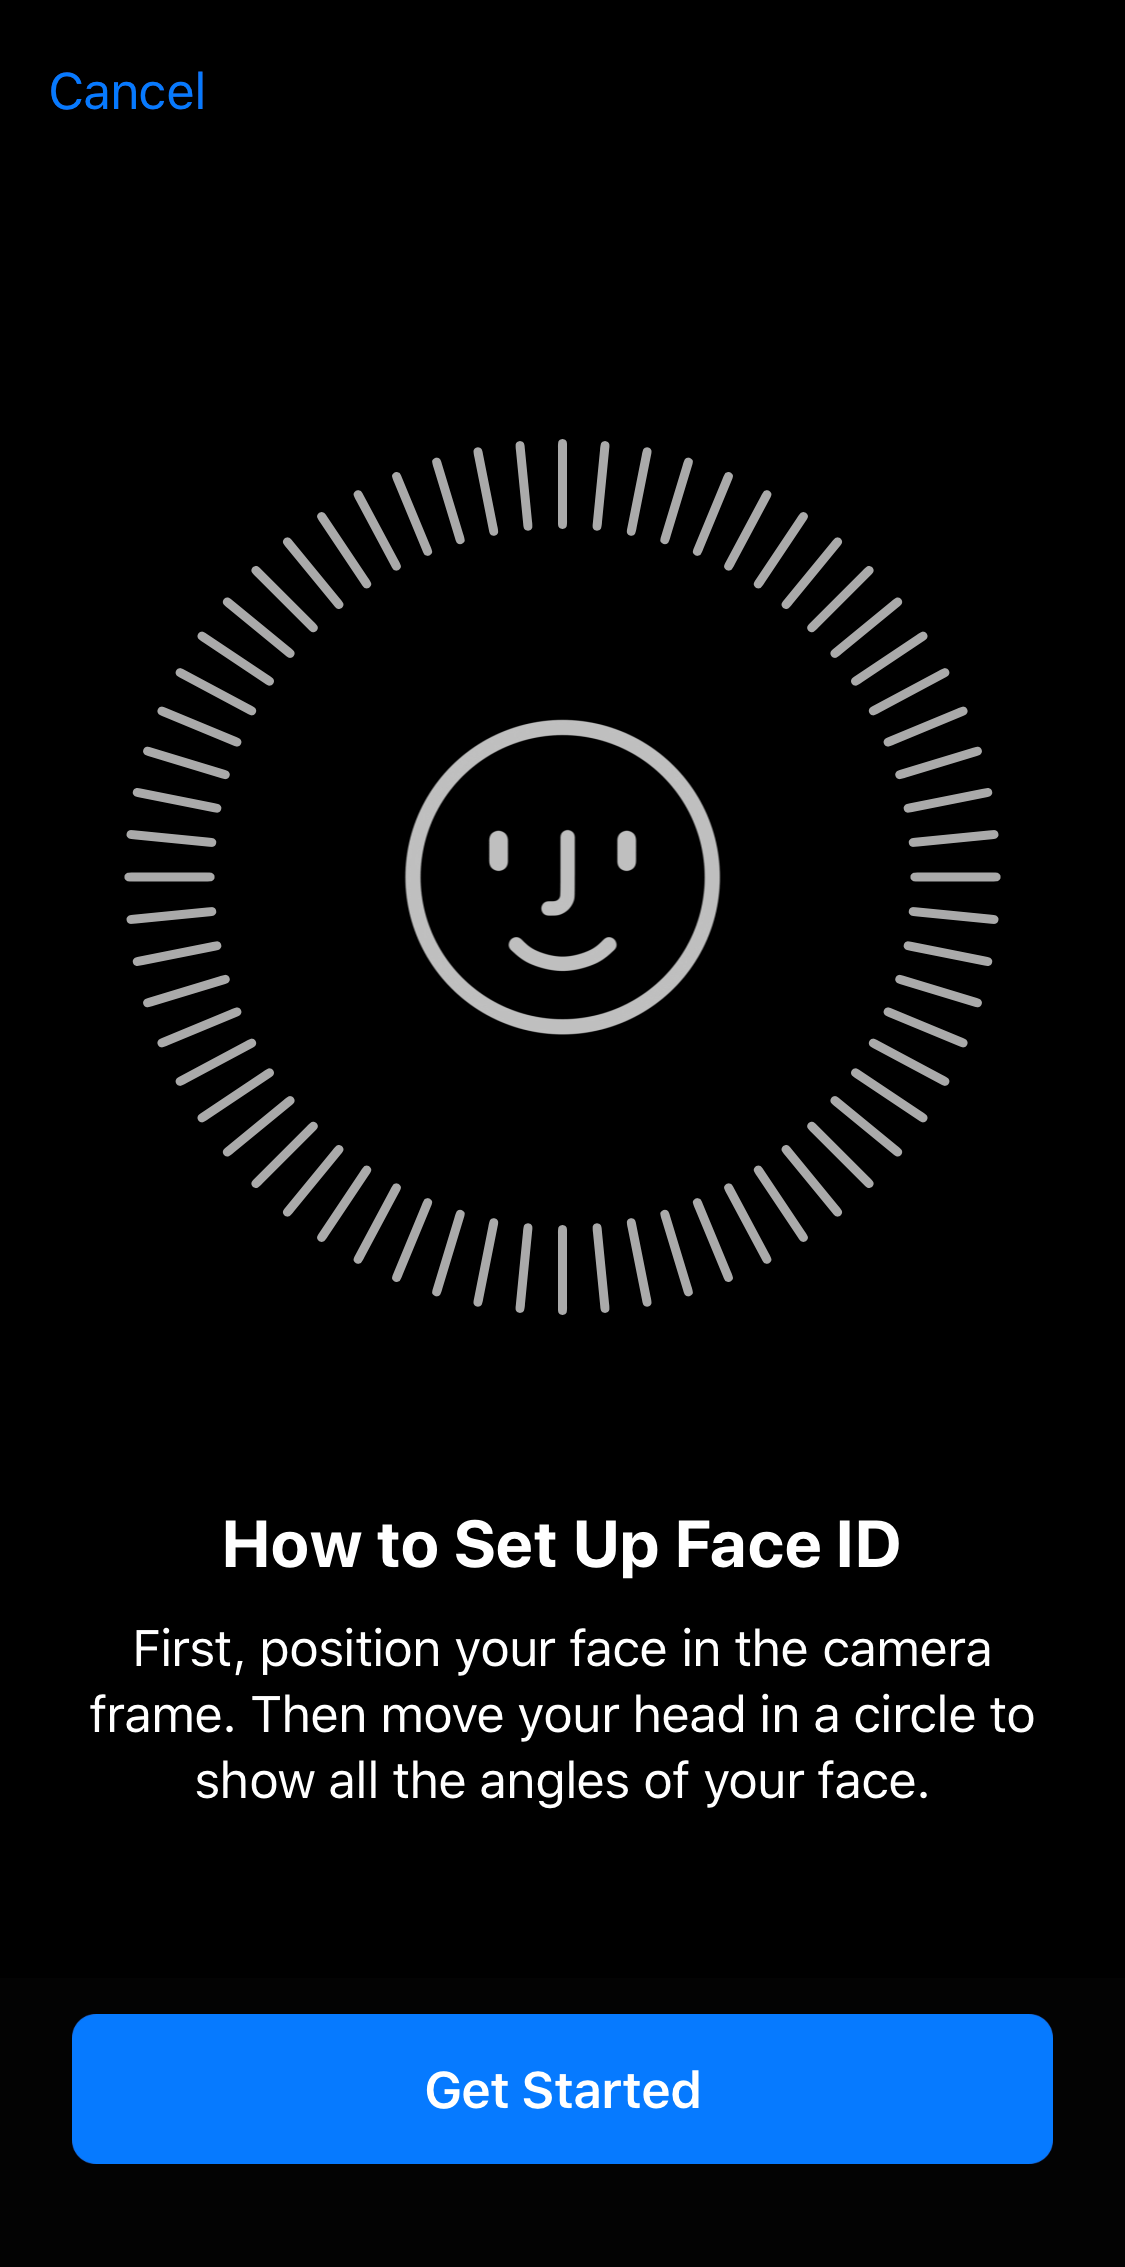 Face ID setup screen displaying setup overview and get started button.